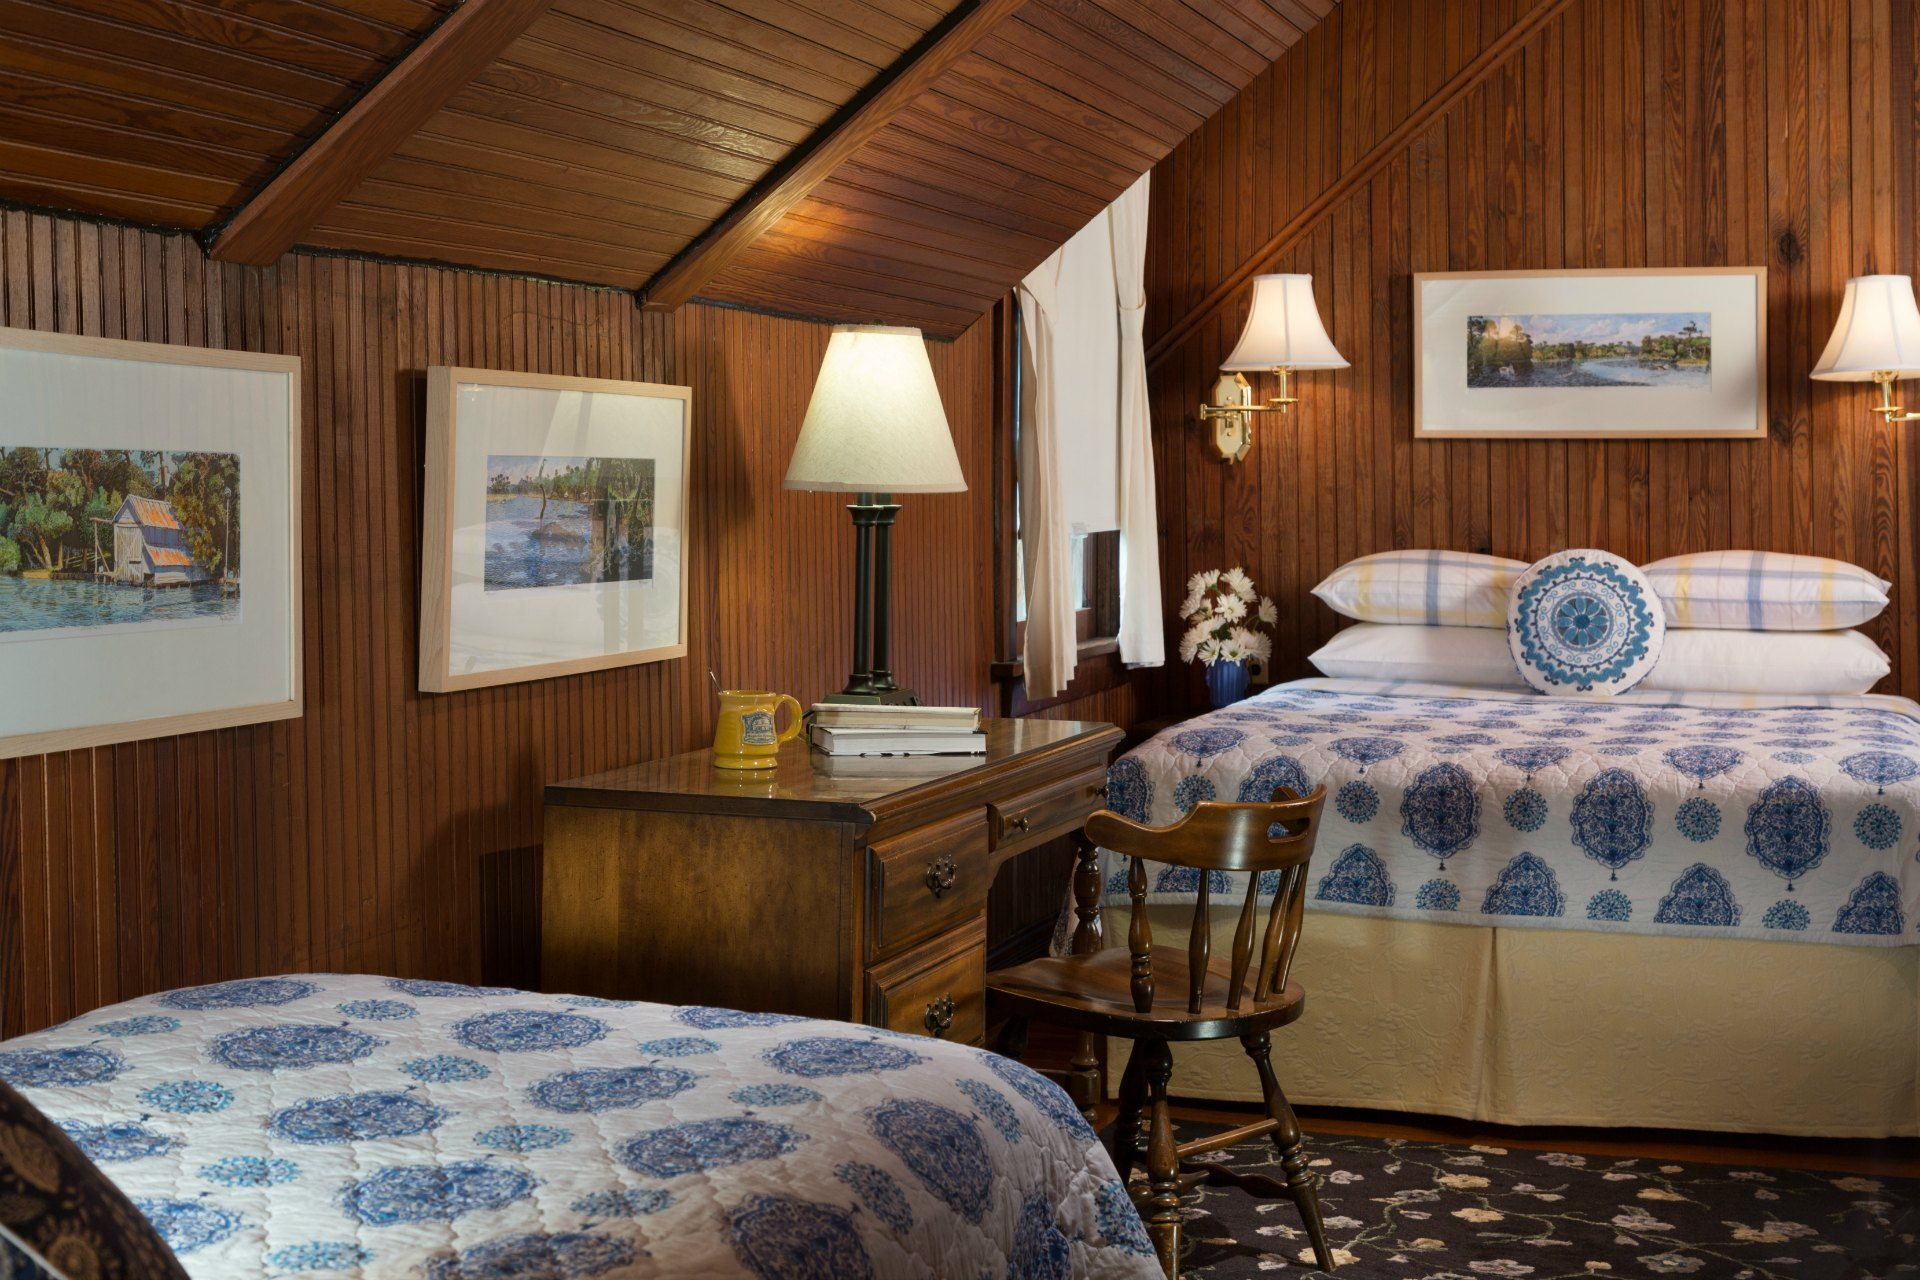 Guests can choose from 5 beautifully appointed guest rooms